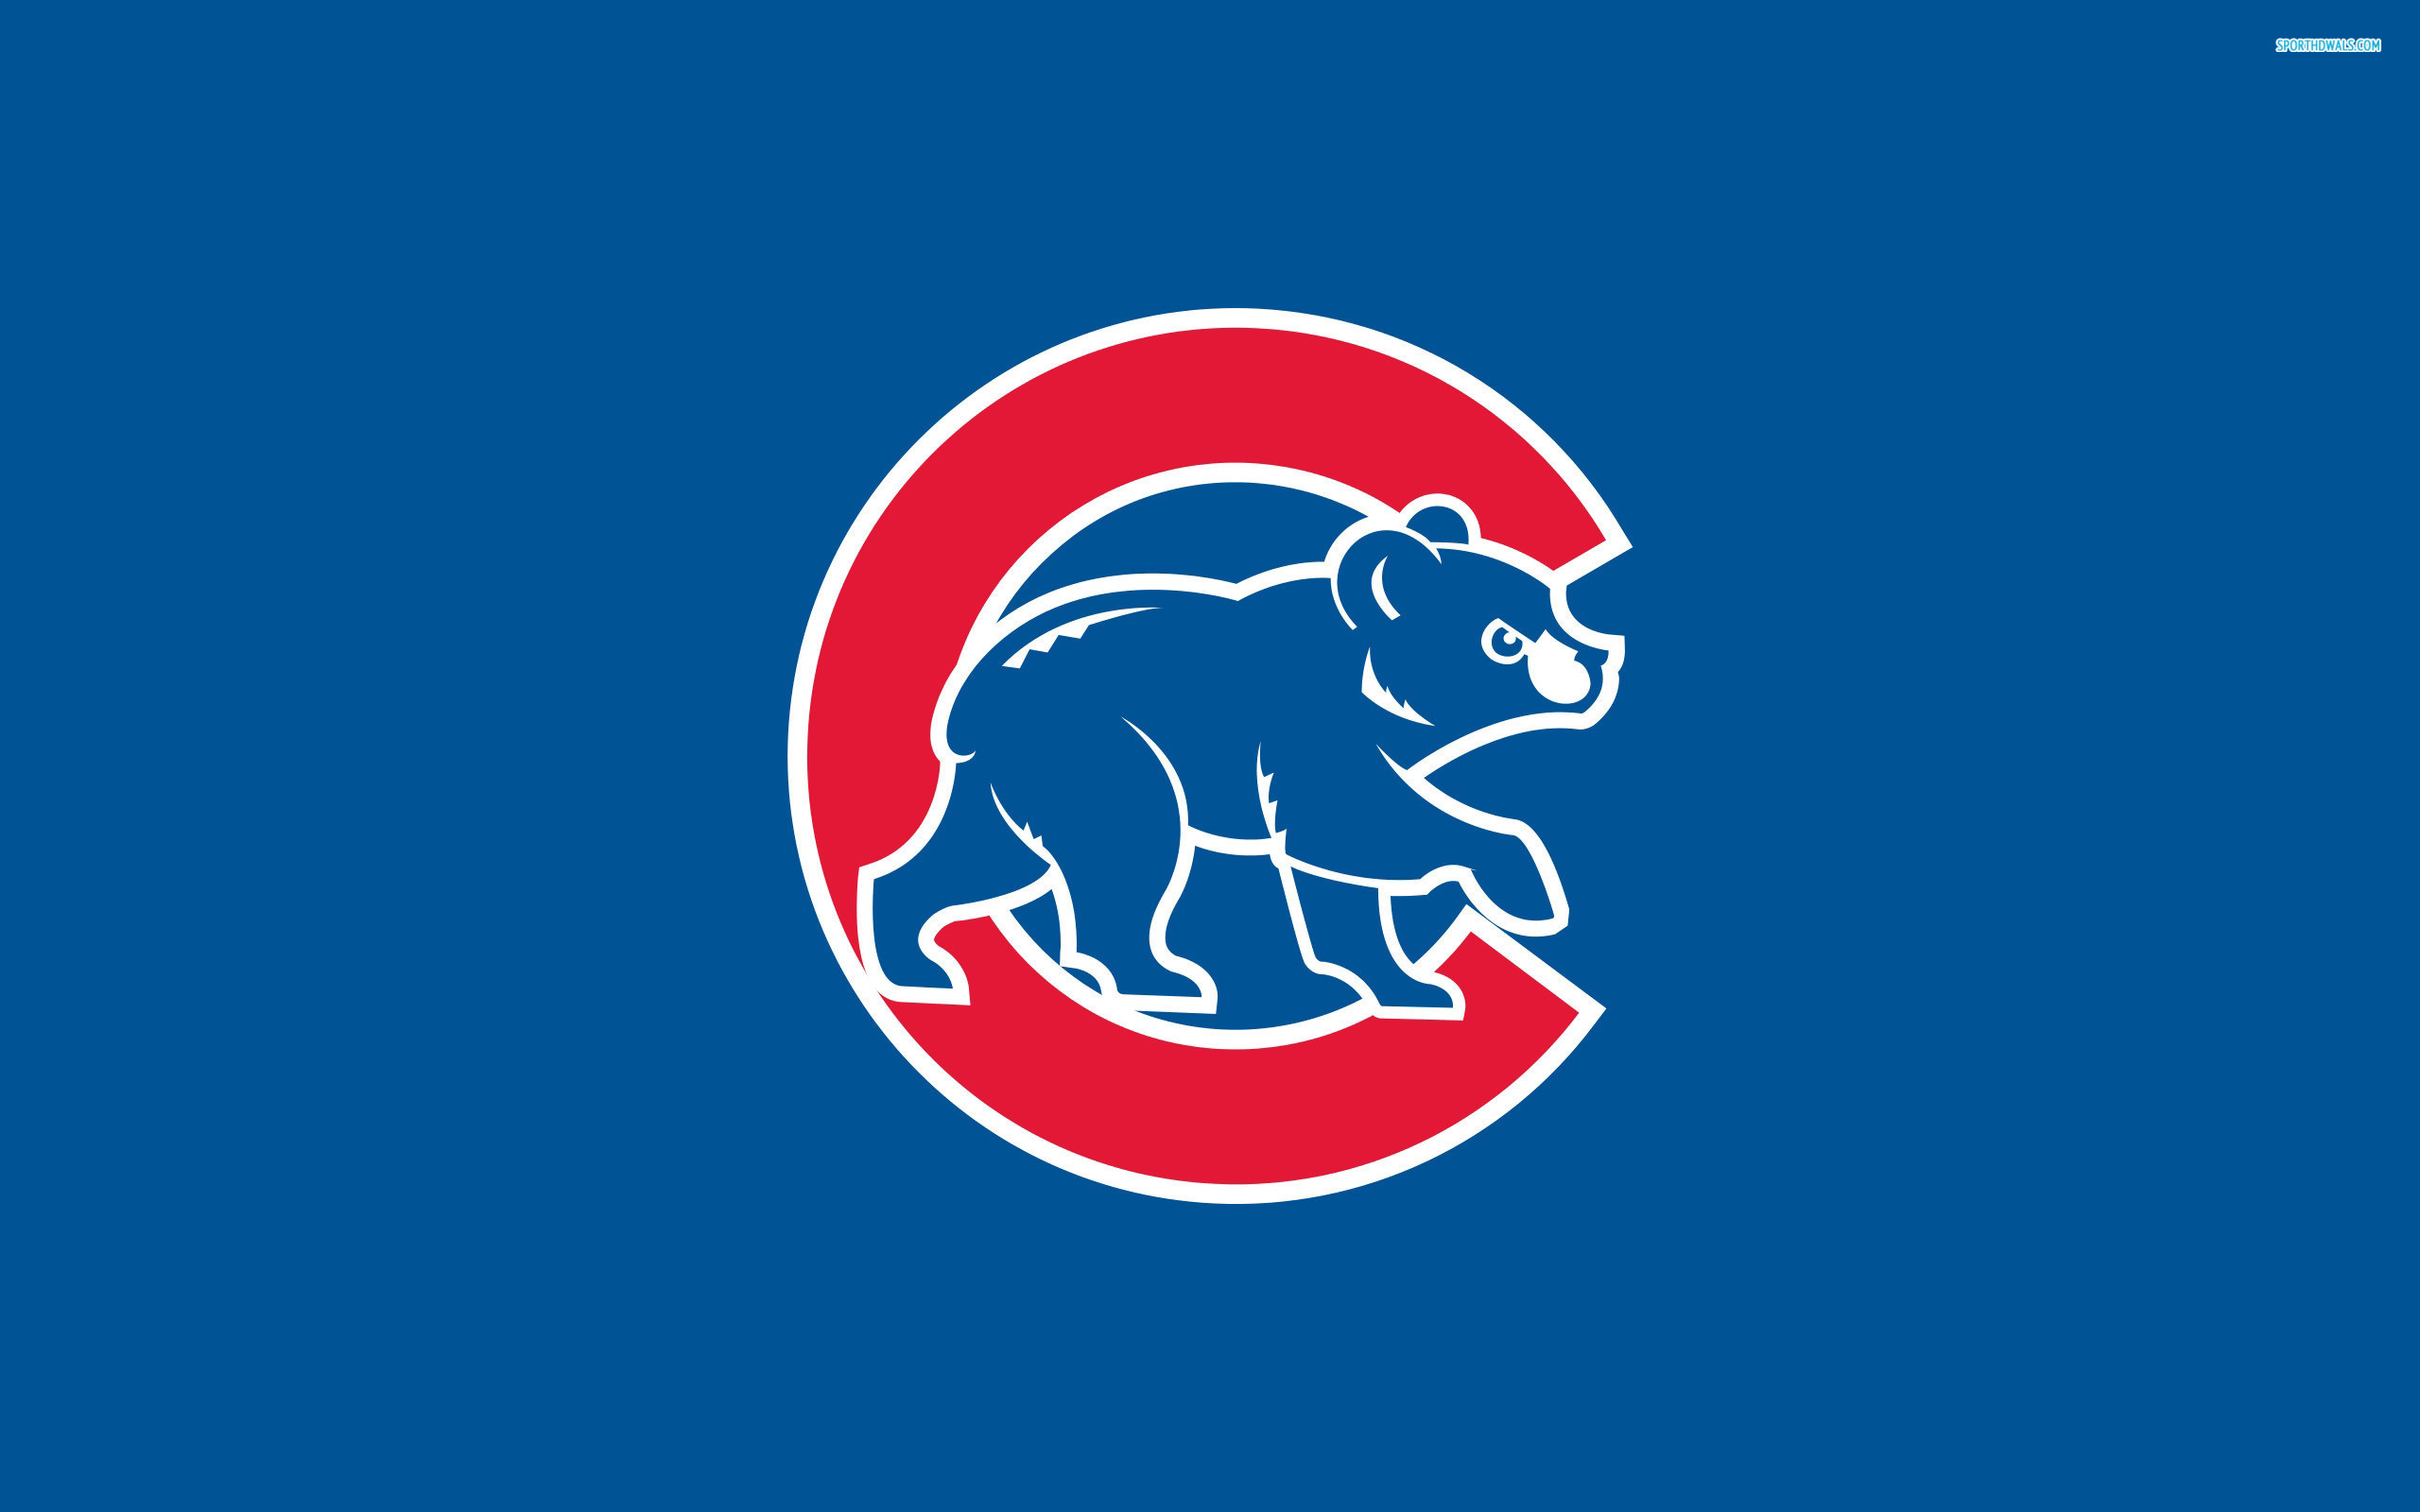 2560x1600 Chicago Cubs Wallpaper